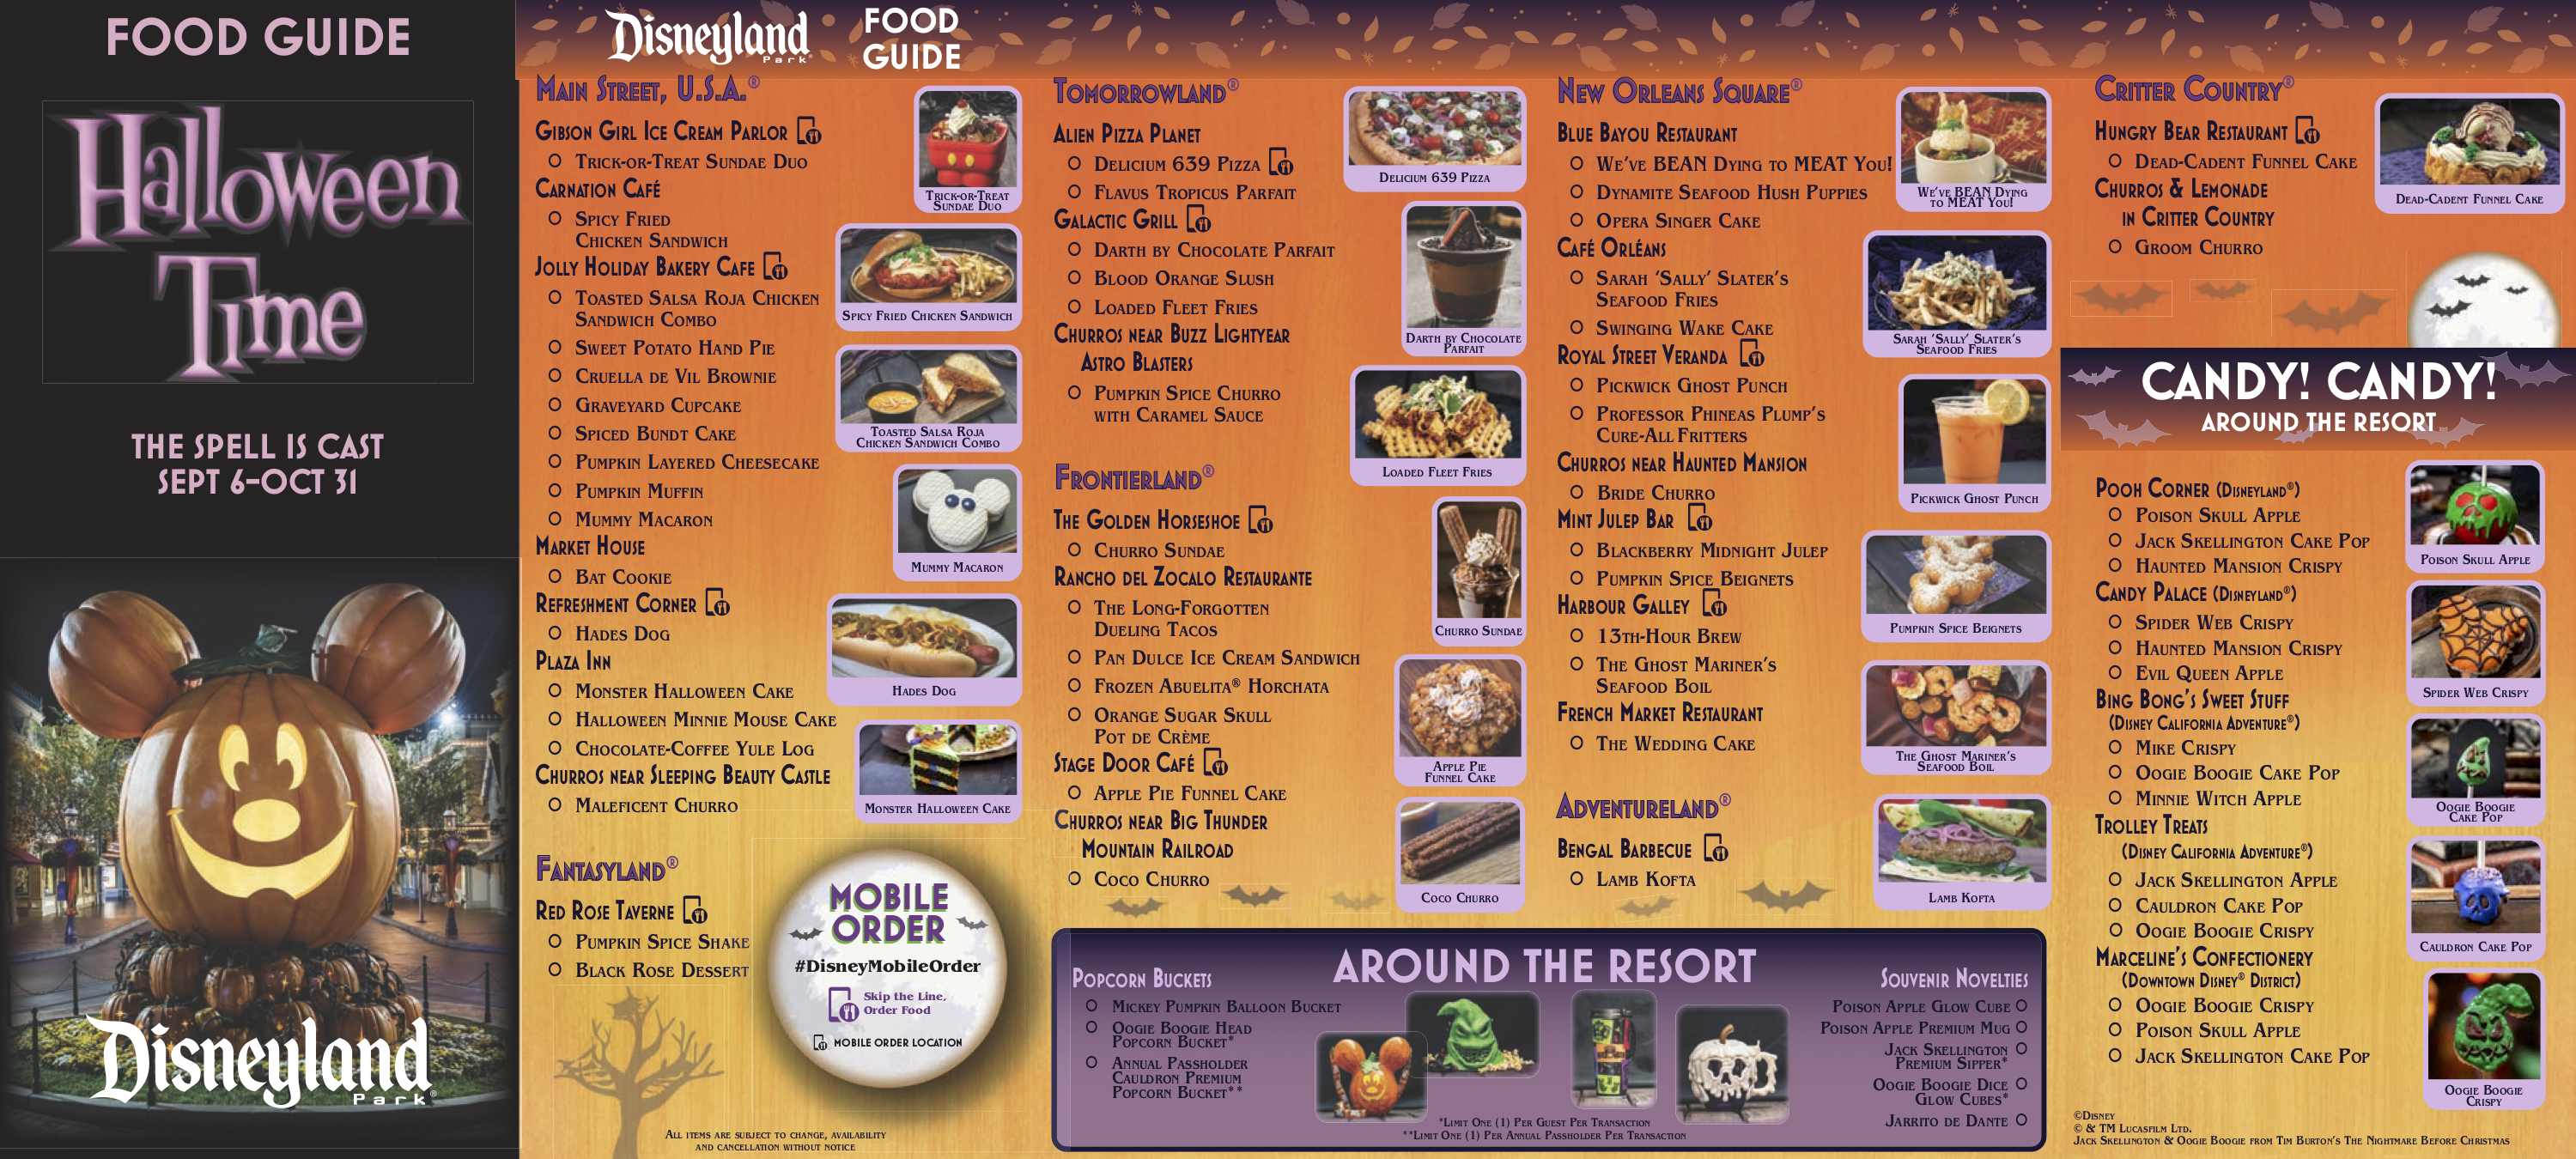 2020 Halloween Disneyland And California Adventure Foodie Map PHOTOS: New Halloween Time 2019 Food Guides Released for